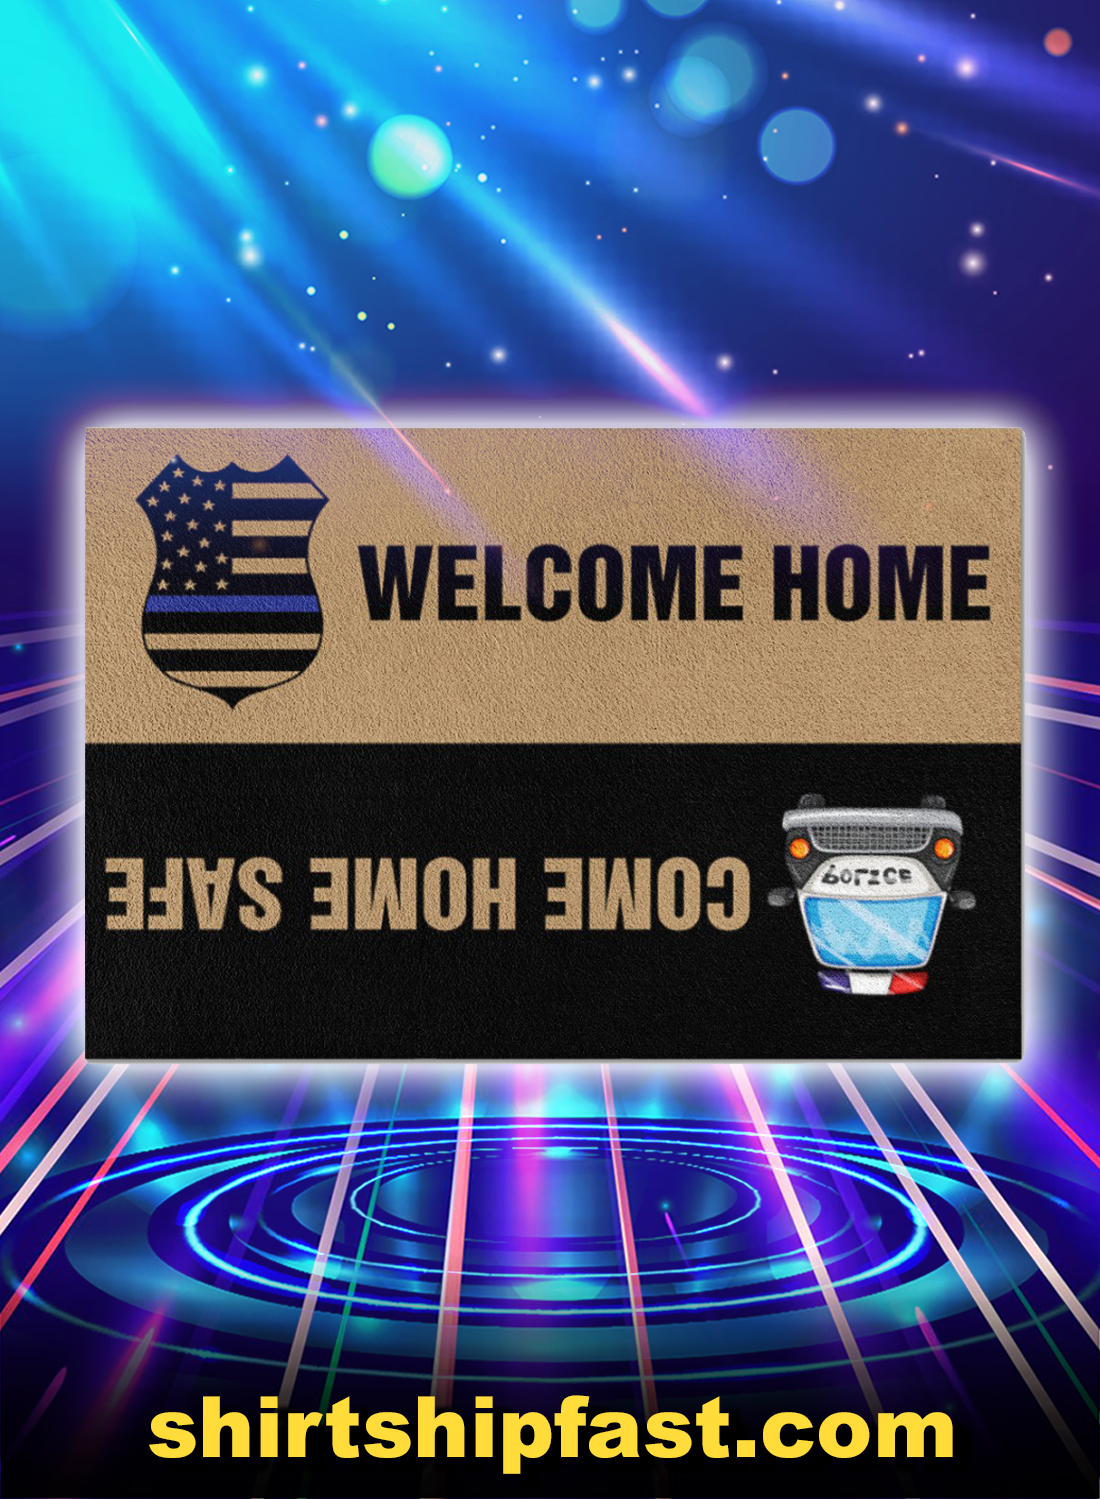 Police welcome home come home safe doormat